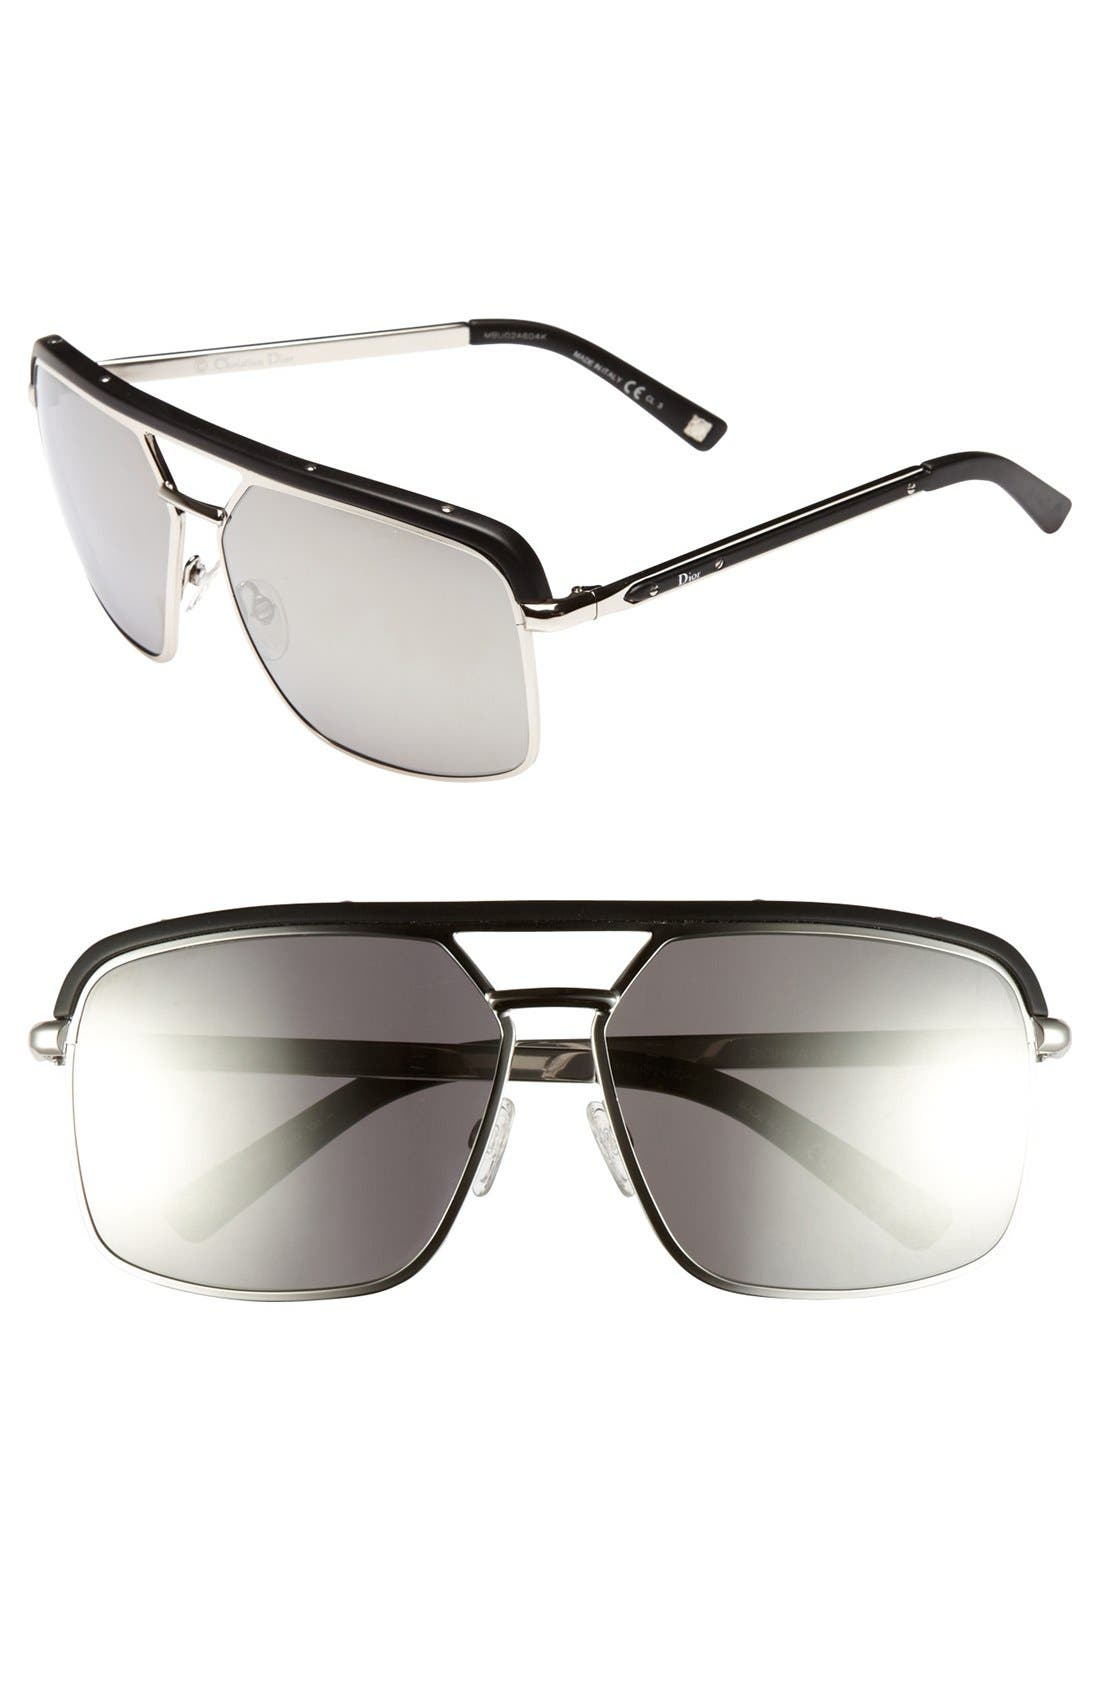 Main Image - Dior 'Havane' 61mm Metal Aviator Sunglasses